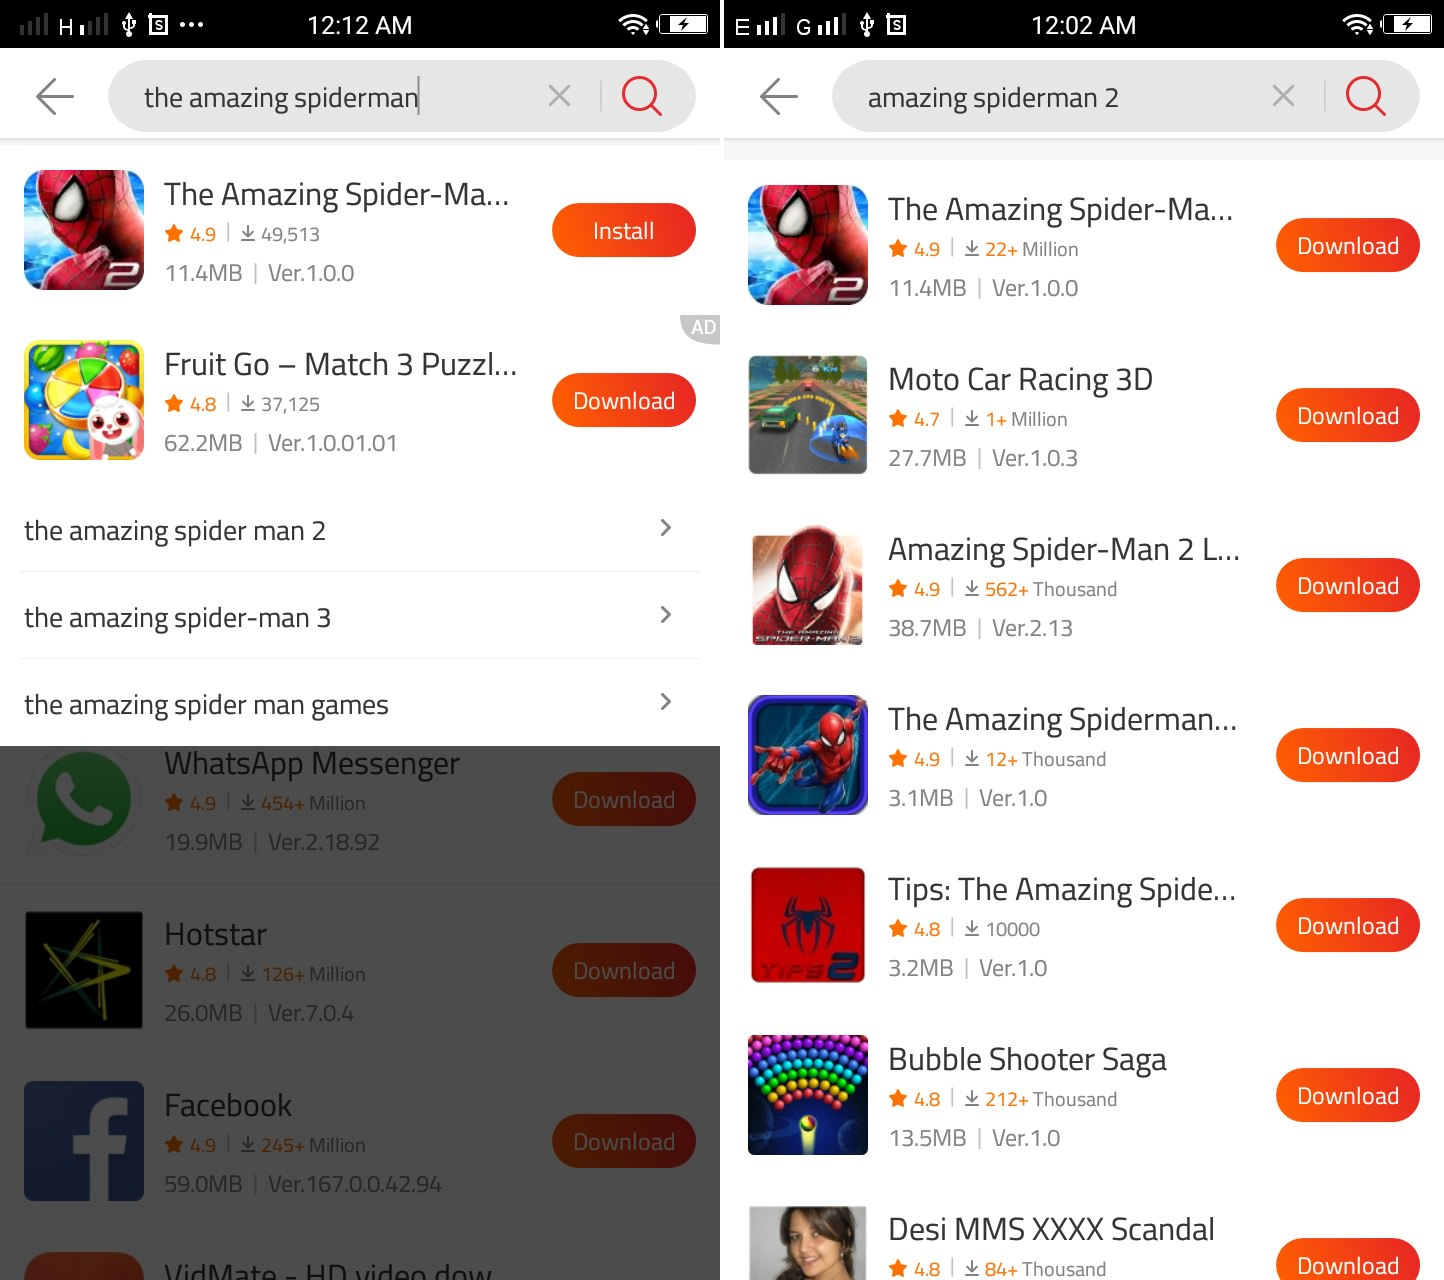 Download Paid Apps for free using 9apps screenshot 2